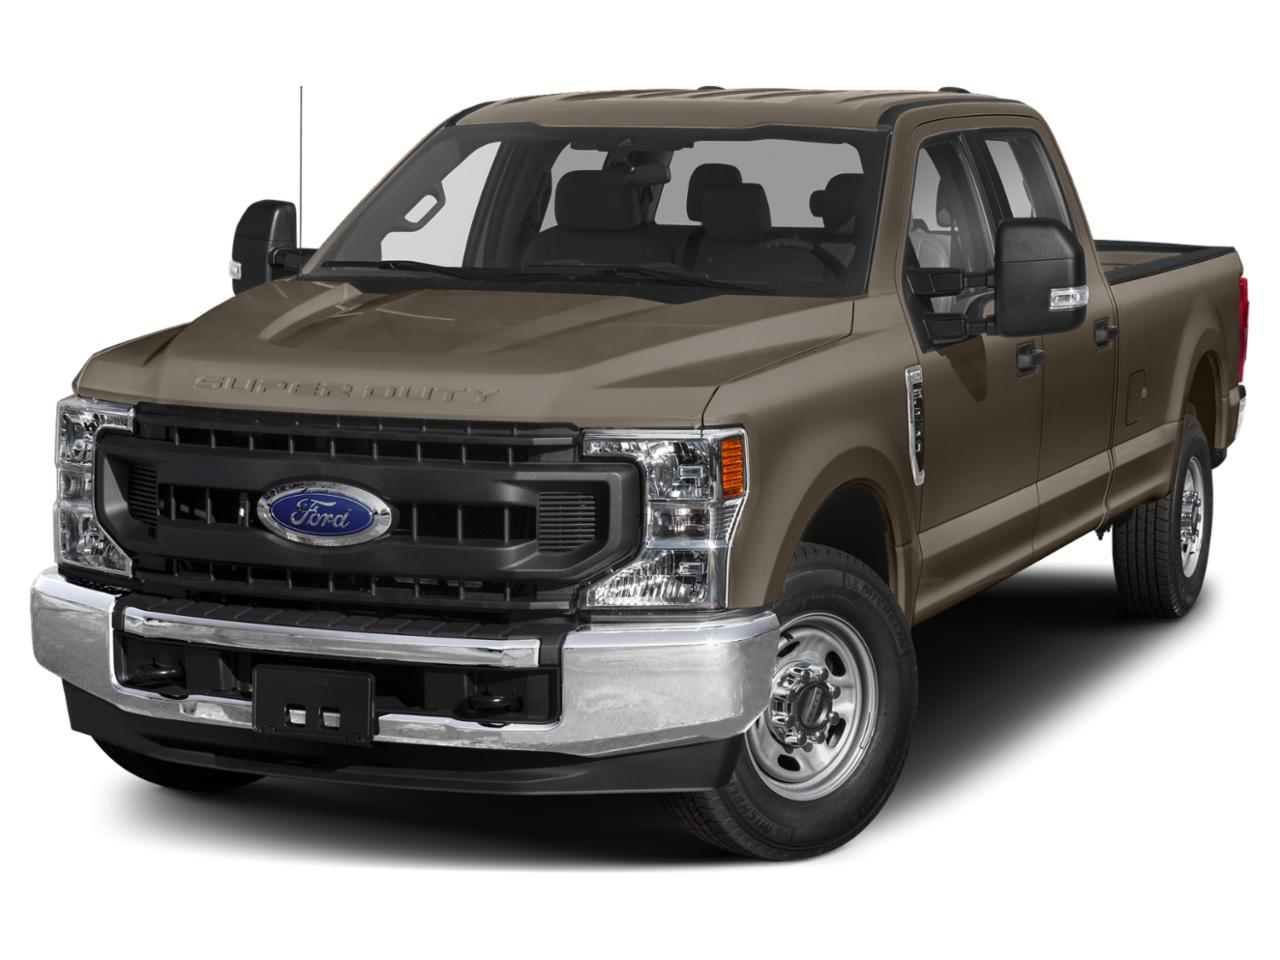 2020 Ford Super Duty F-250 SRW Vehicle Photo in West Chester, PA 19382